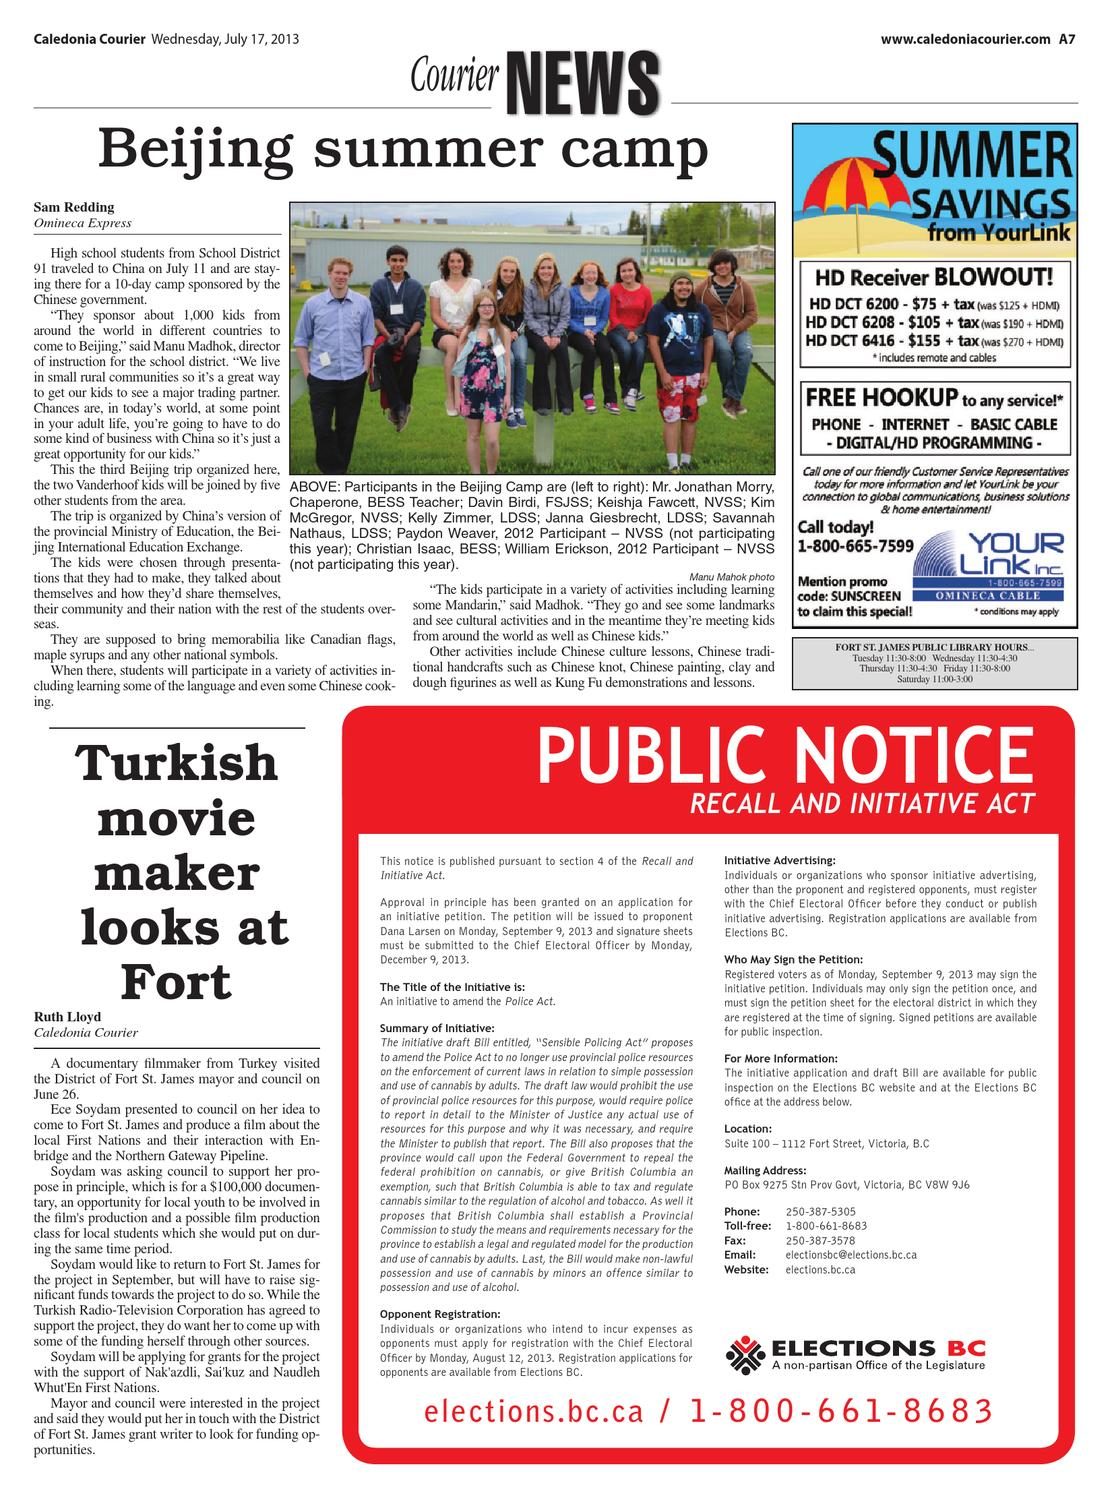 Caledonia Courier, July 17, 2013 by Black Press Media Group